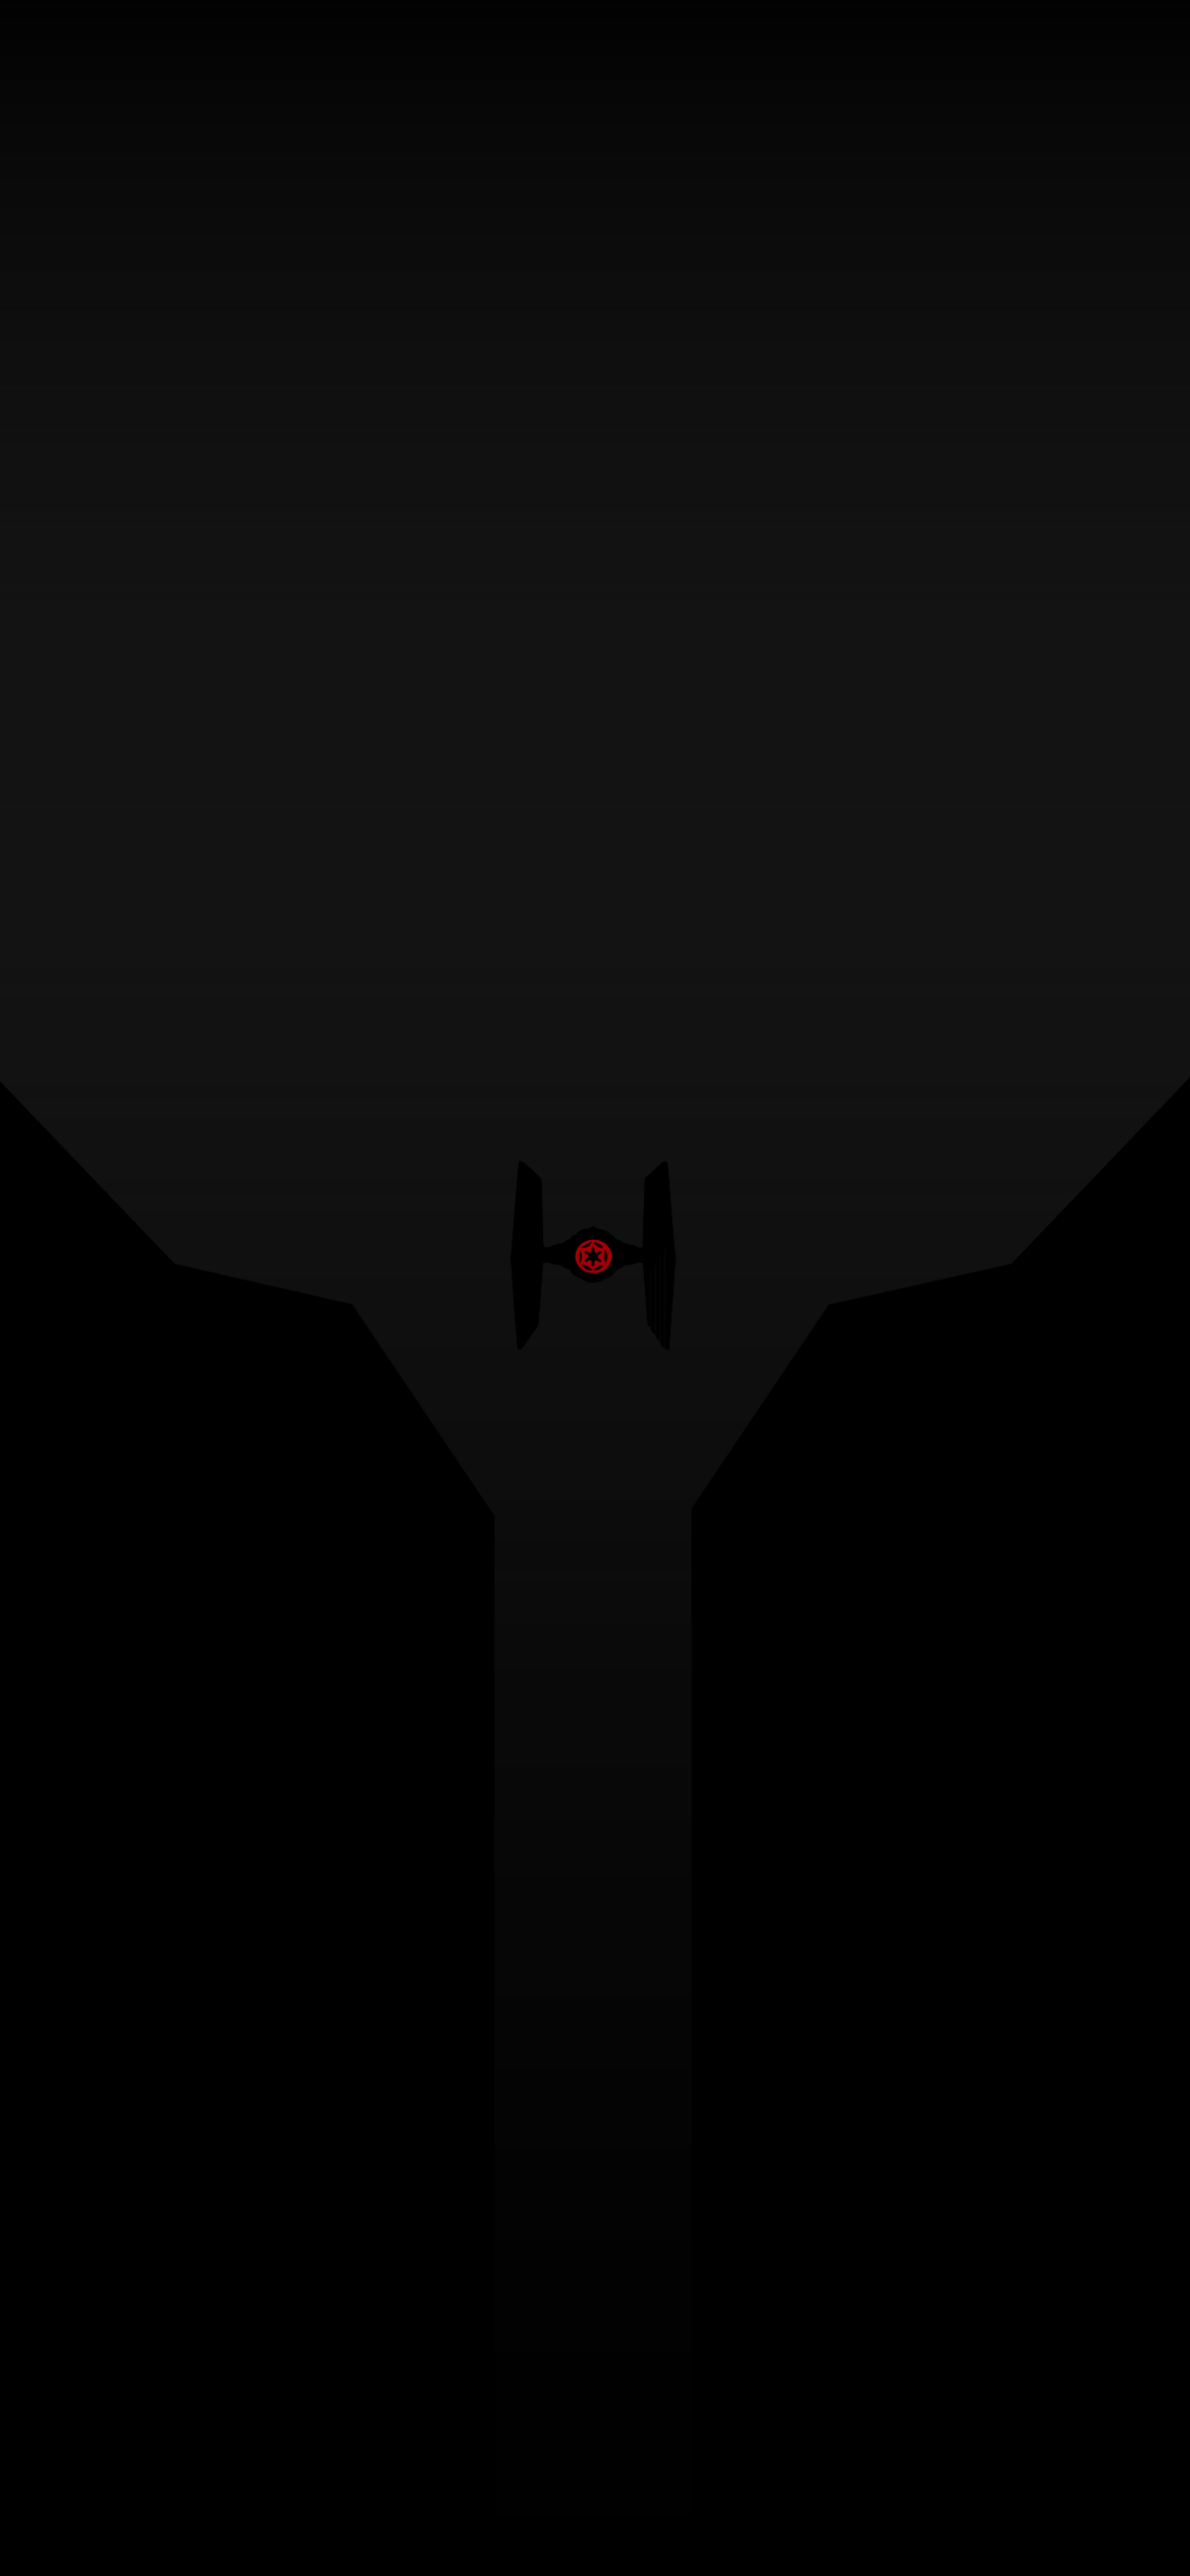 star-wars-minimalist-wallpaper-4k